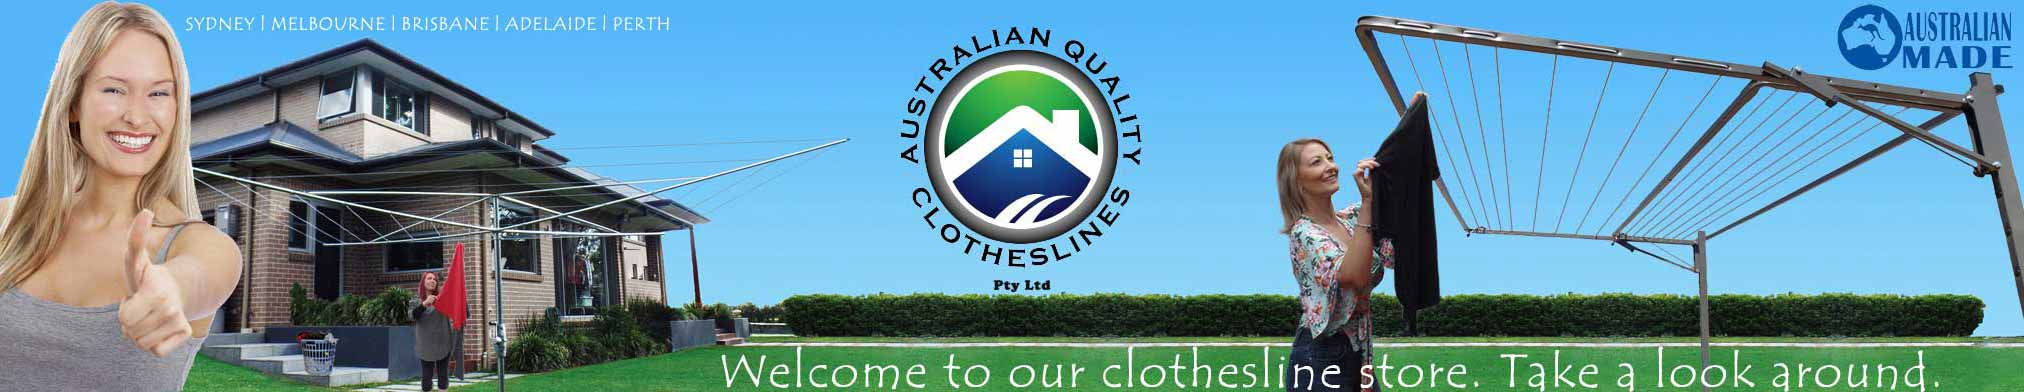 Australian Quality clotheslines main banner